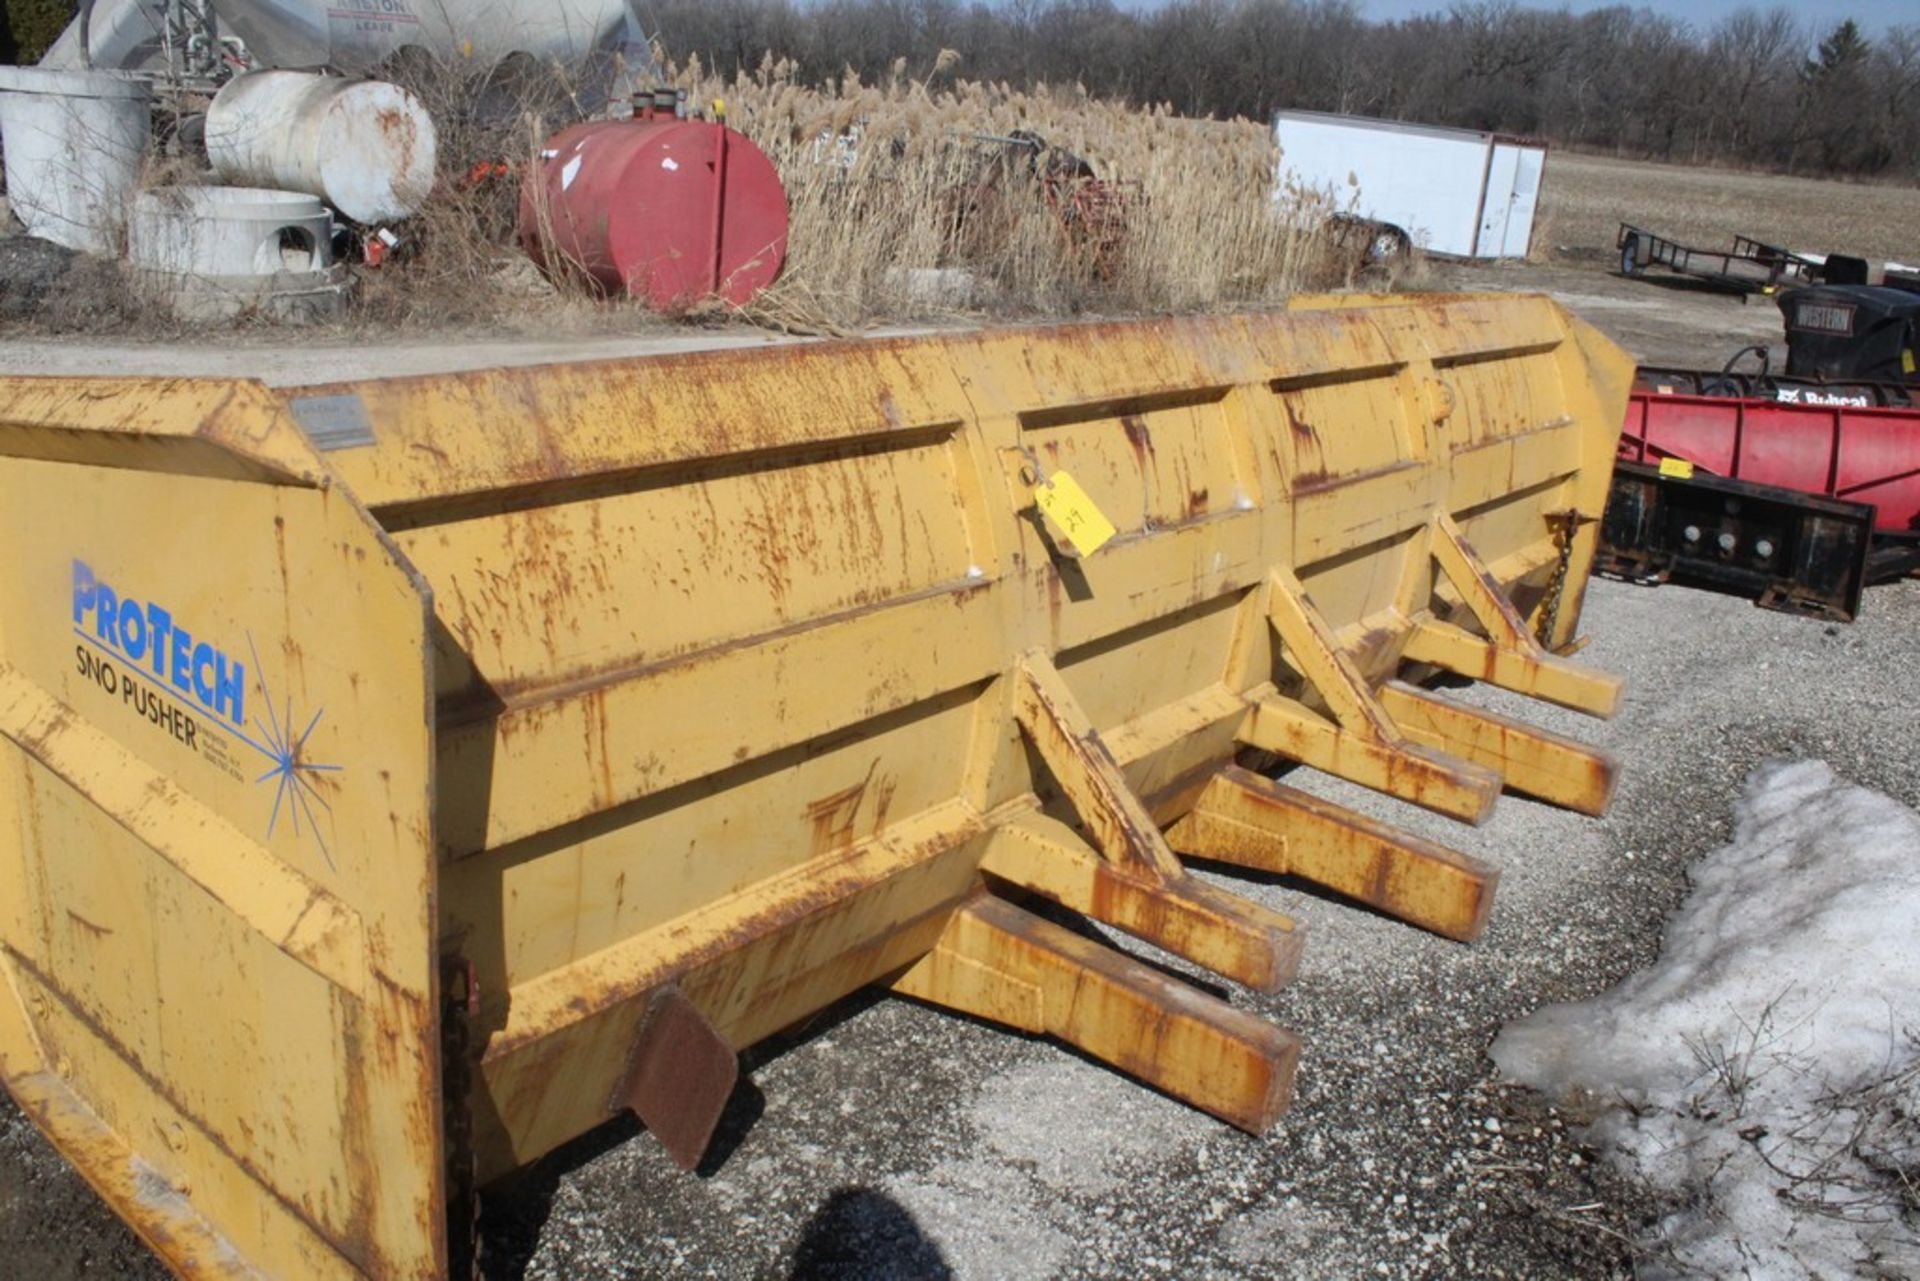 PRO-TECH 14-FT. MODEL SNO PUSHER SNOW PUSHER ATTACHMENT S/N: 3042, TO FIT WHEEL LOADER - Image 3 of 4